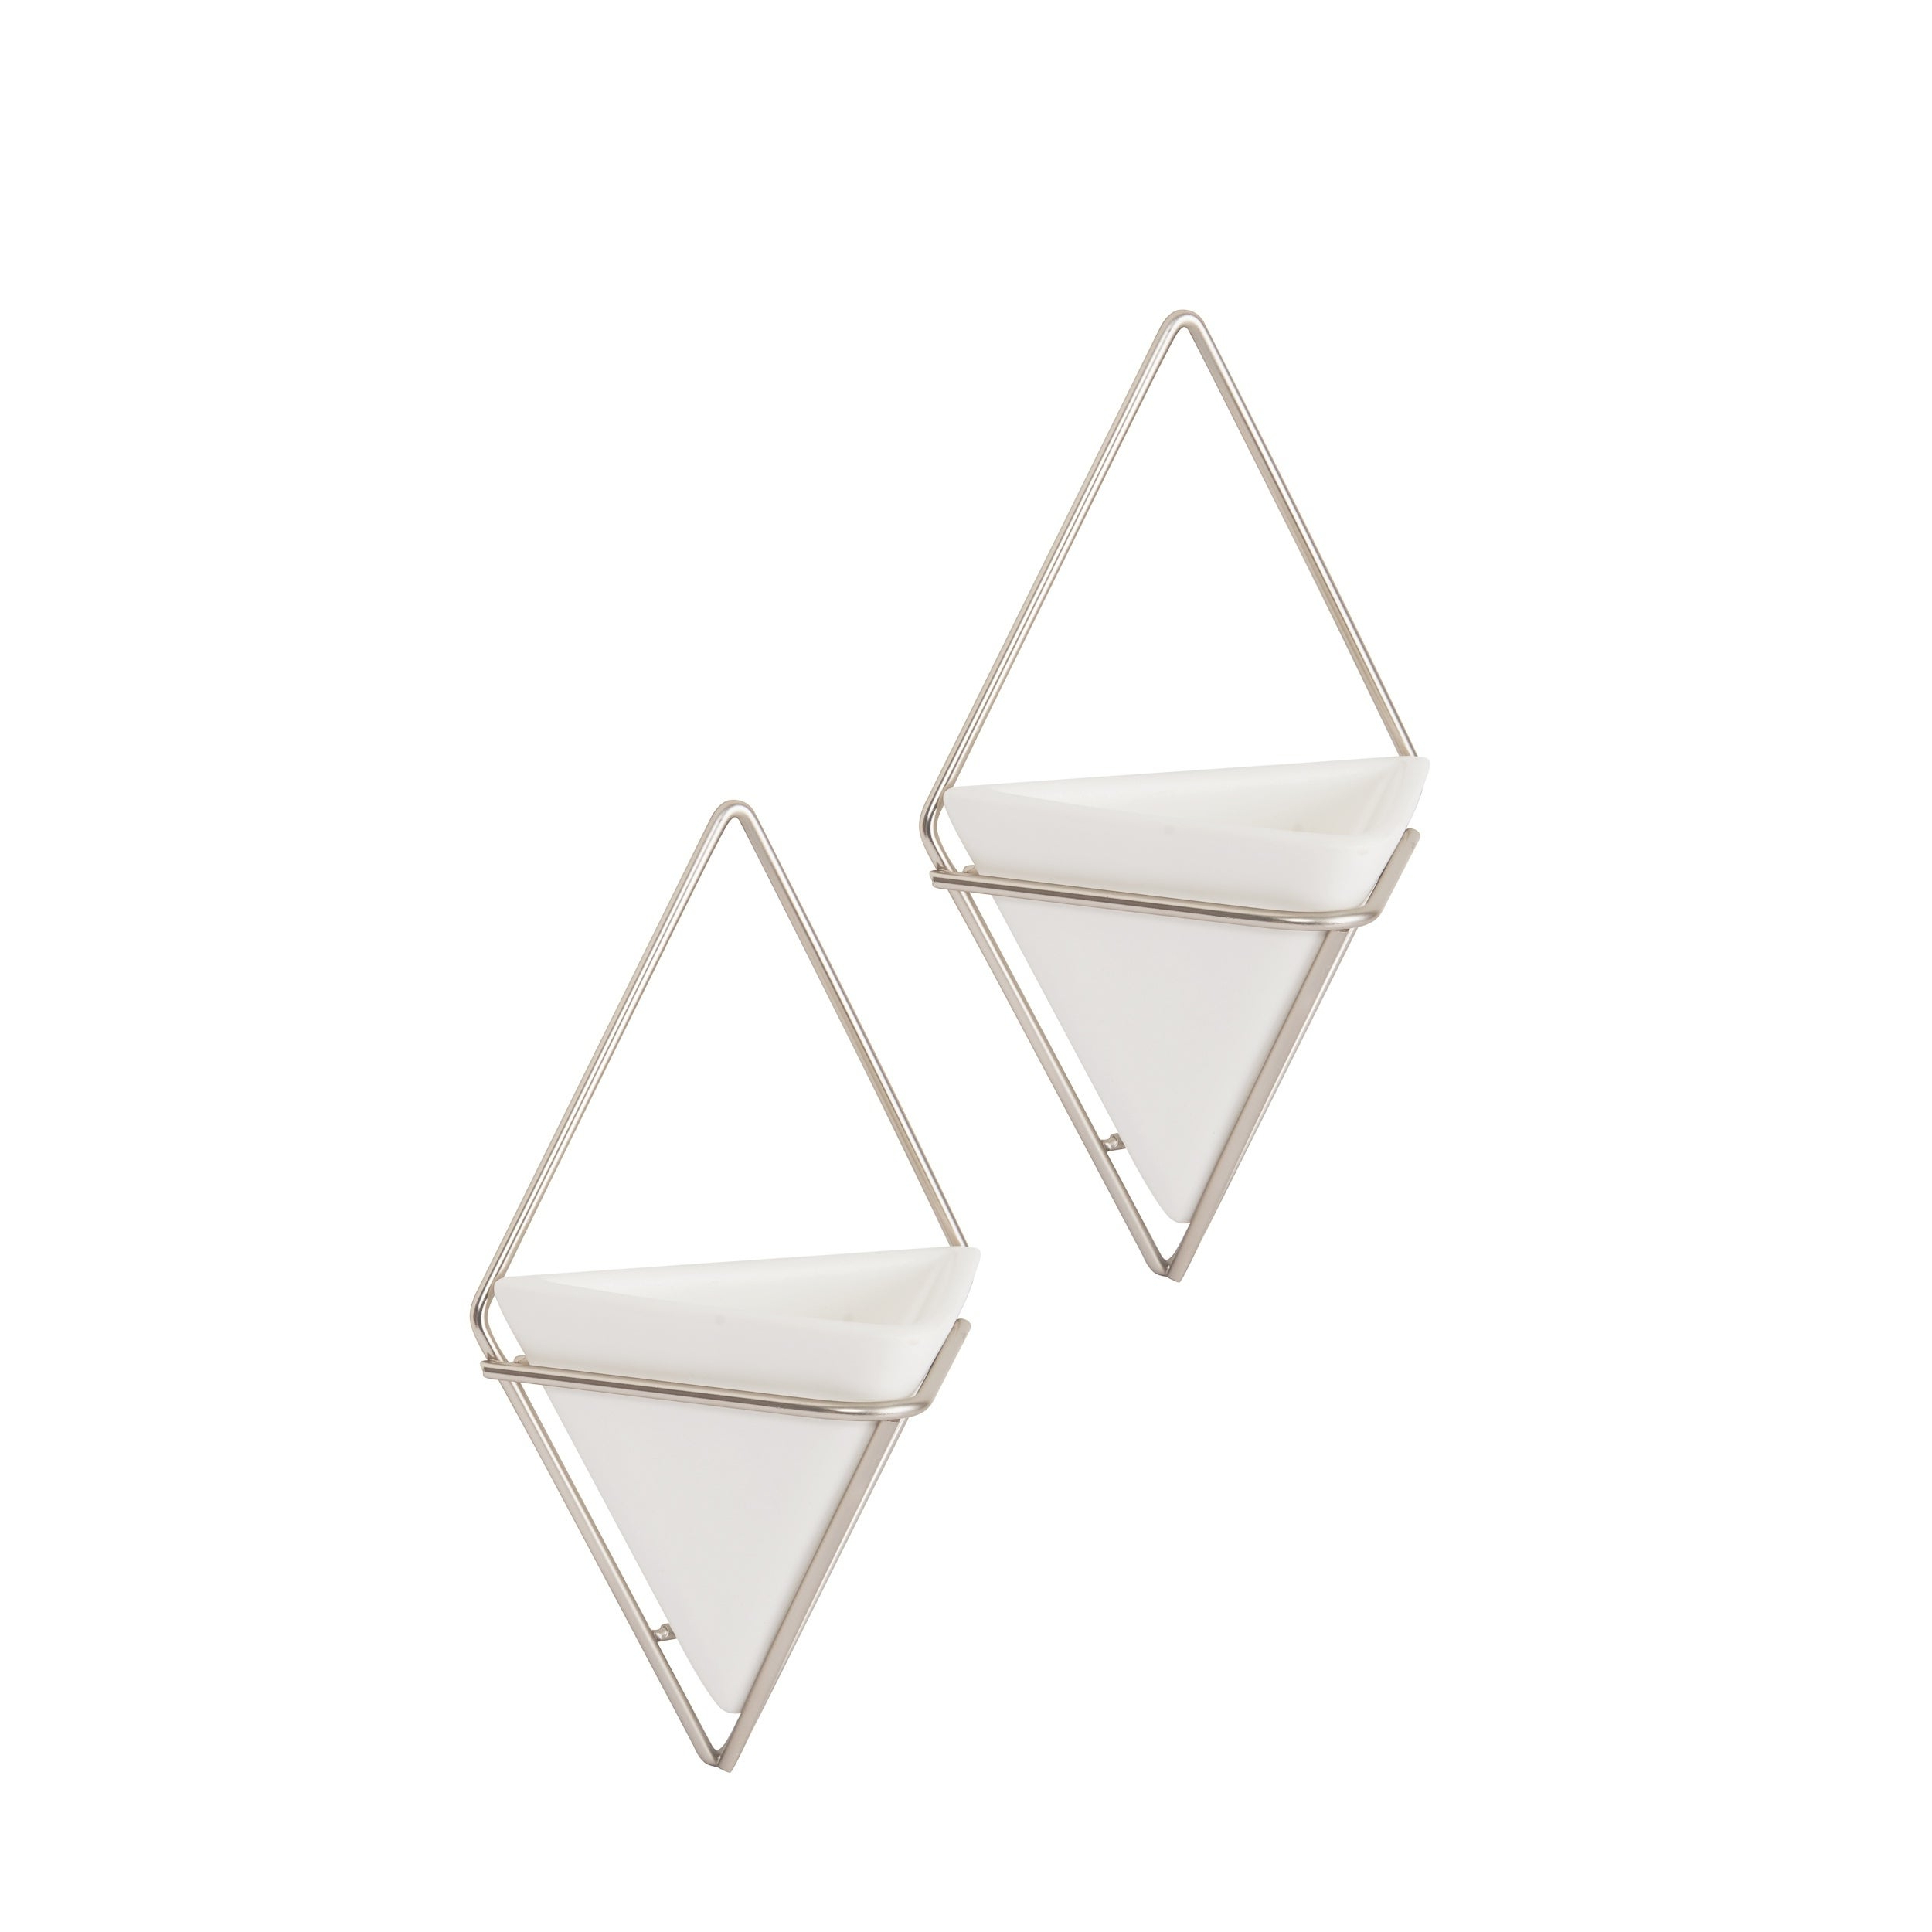 2 Piece Trigg Wall Decor Sets (Set Of 2) For Well Liked Shop Umbra Trigg Hanging Planter & Wall Decor (Set Of 2) – Free (Gallery 16 of 20)